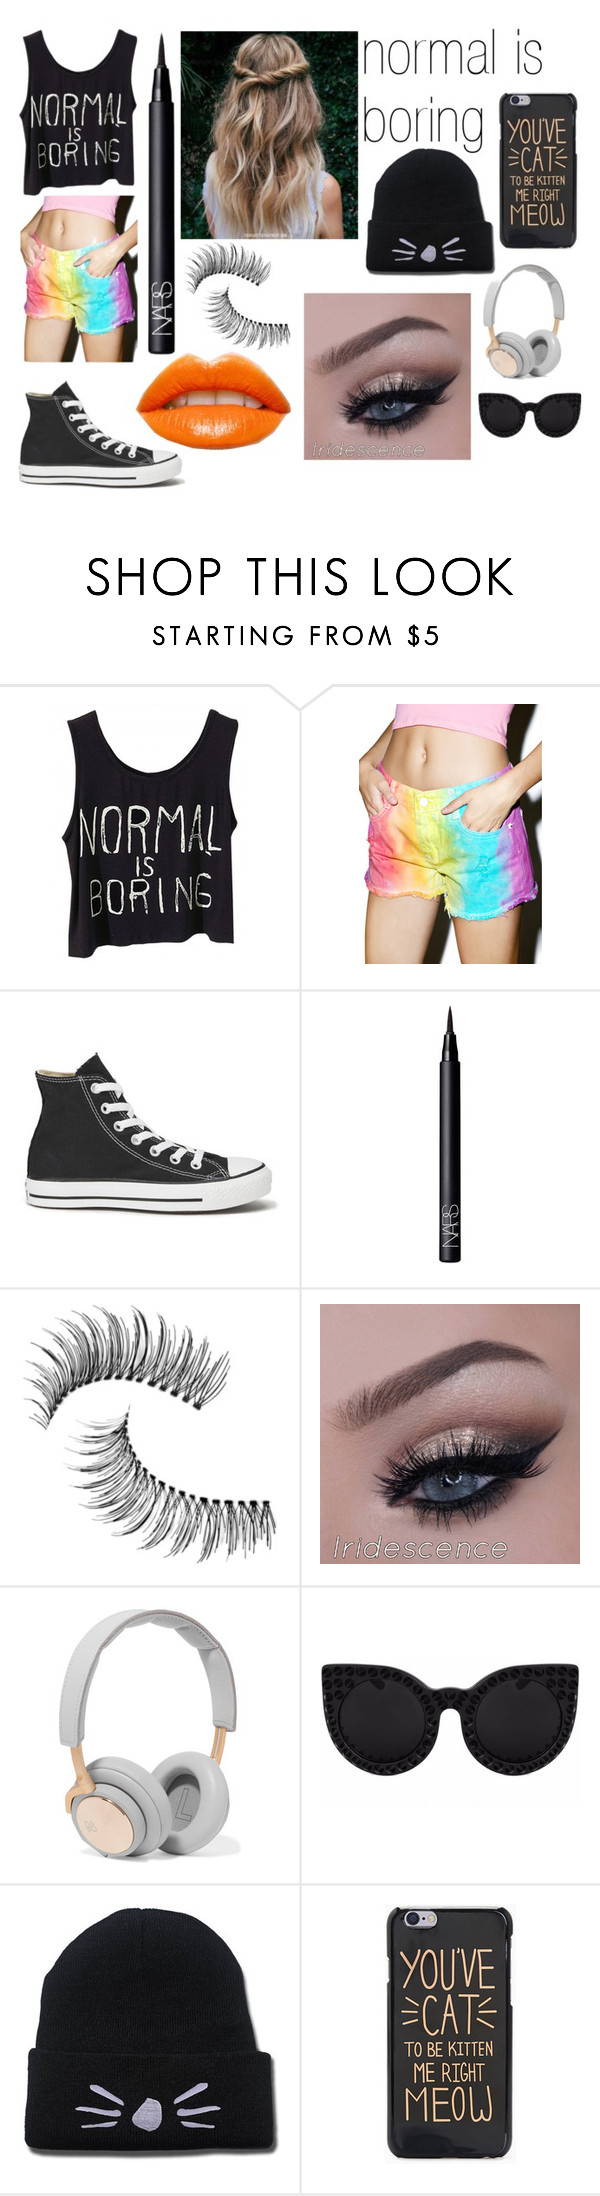 """""""normal is boring"""" by sackclothanddashes on Polyvore featuring Cosmic Unicornz, Converse, NARS Cosmetics, Trish McEvoy, B&O Play, Delalle and whennormalpeoplesuck"""